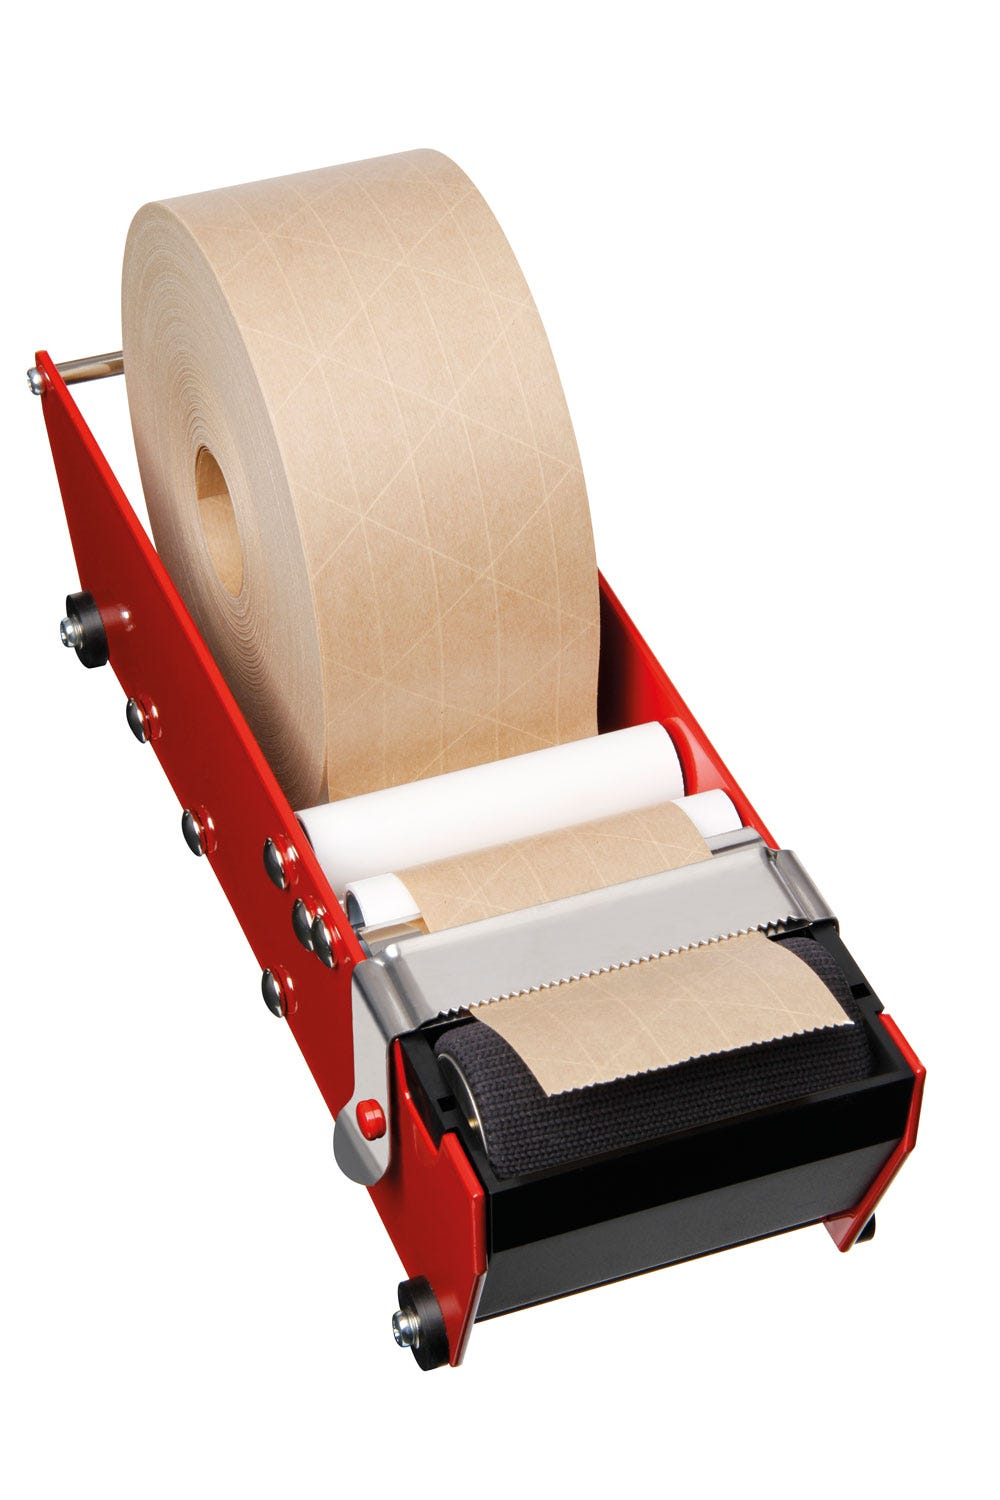 Budget Pull & Tear Gummed Paper Tape Dispenser